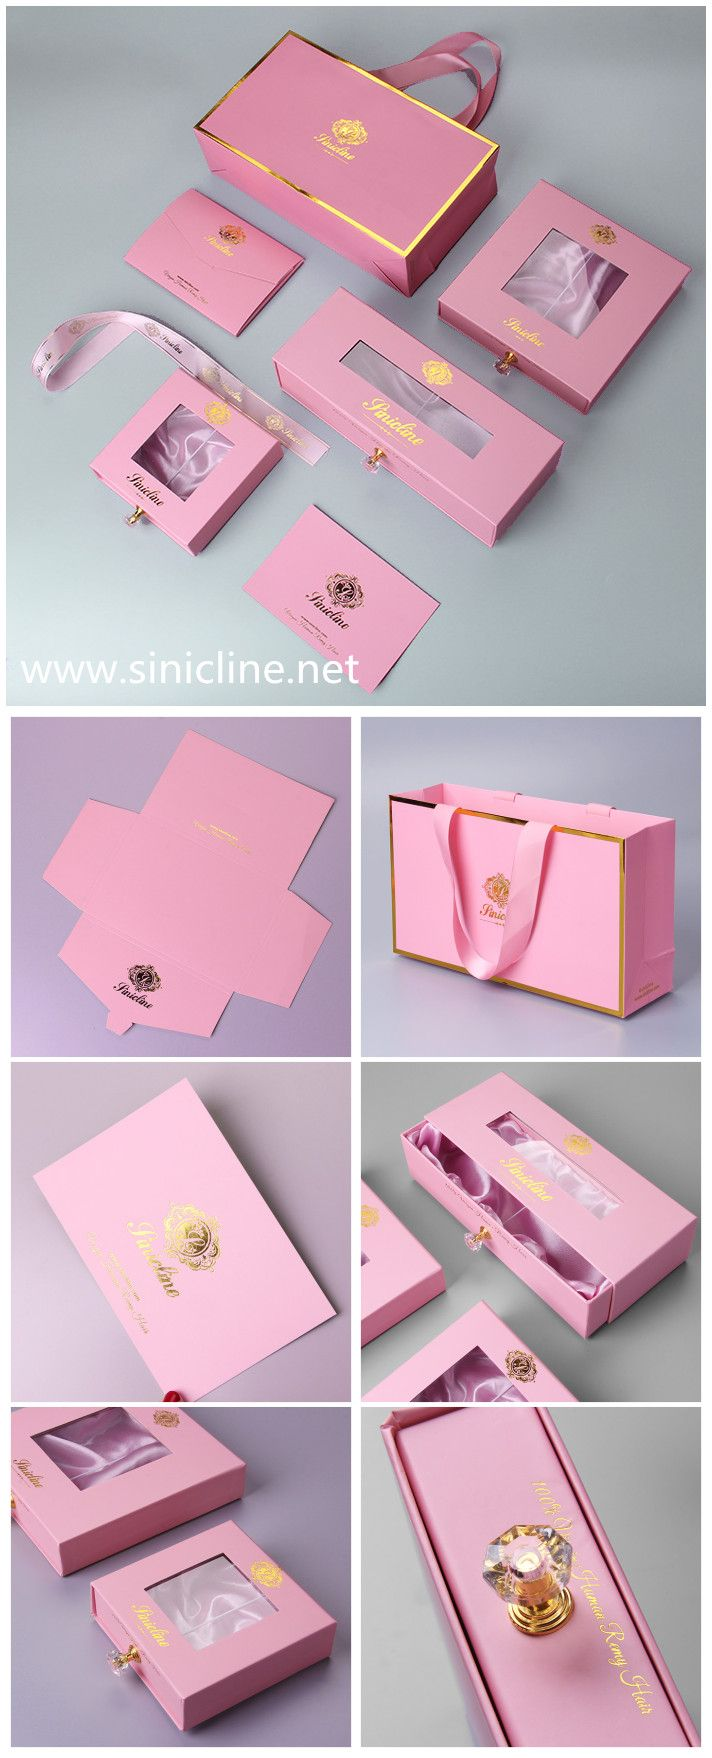 Hair extensions business cards created by dt webdesigns beauty luxury hair hair extension packaging boxes and bags by sinicline hairextension wig pmusecretfo Choice Image